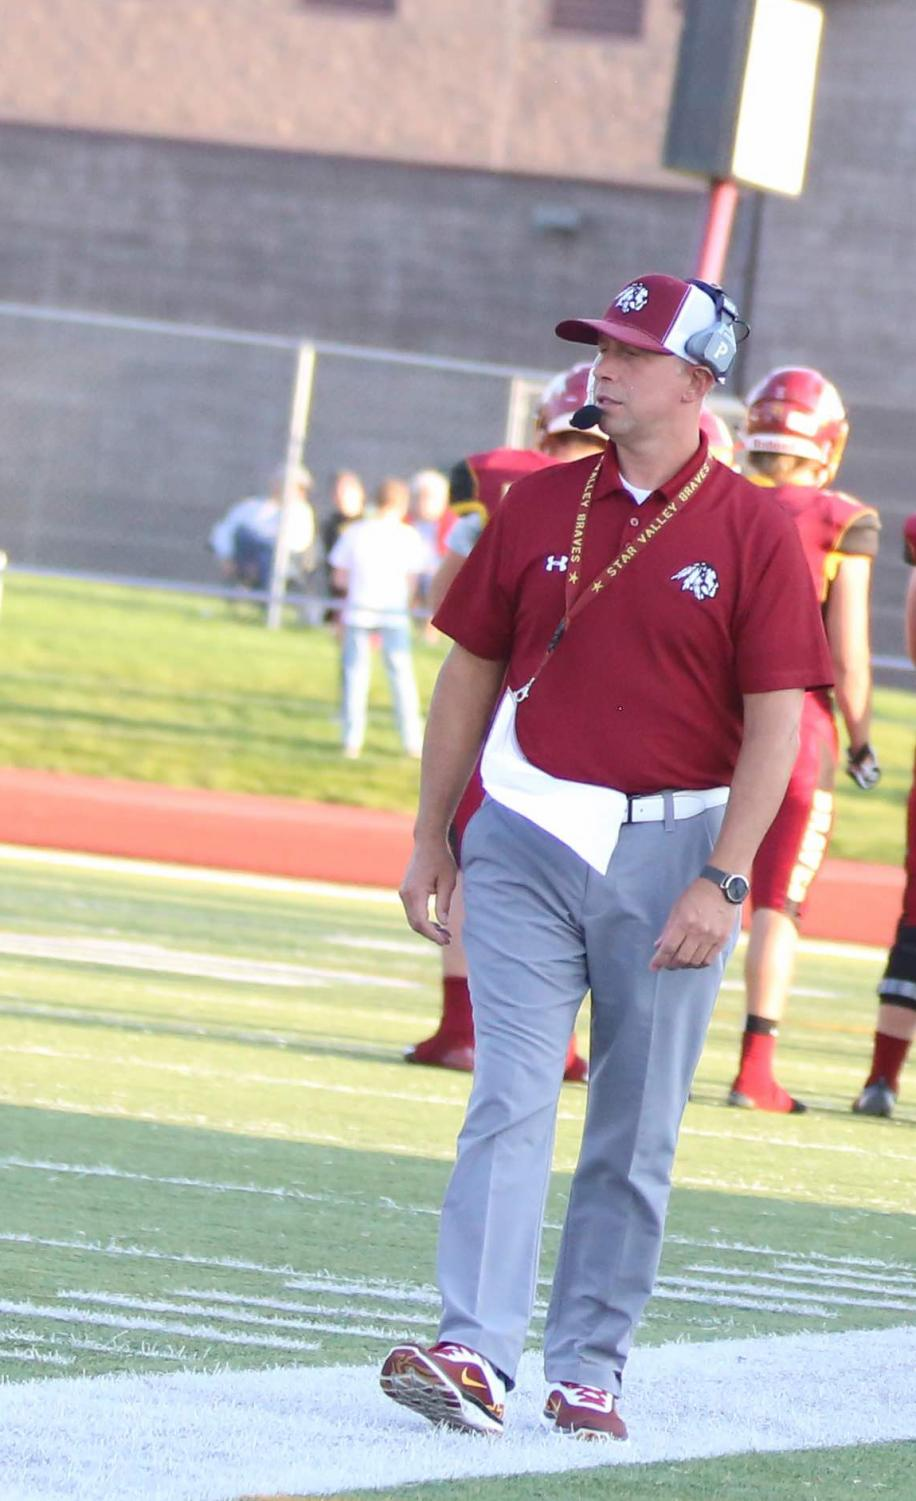 STRUTTIN: Mr. Patterson walks along the sideline scoping out the competition. Patterson has spend most his career coaching football and wrestling.